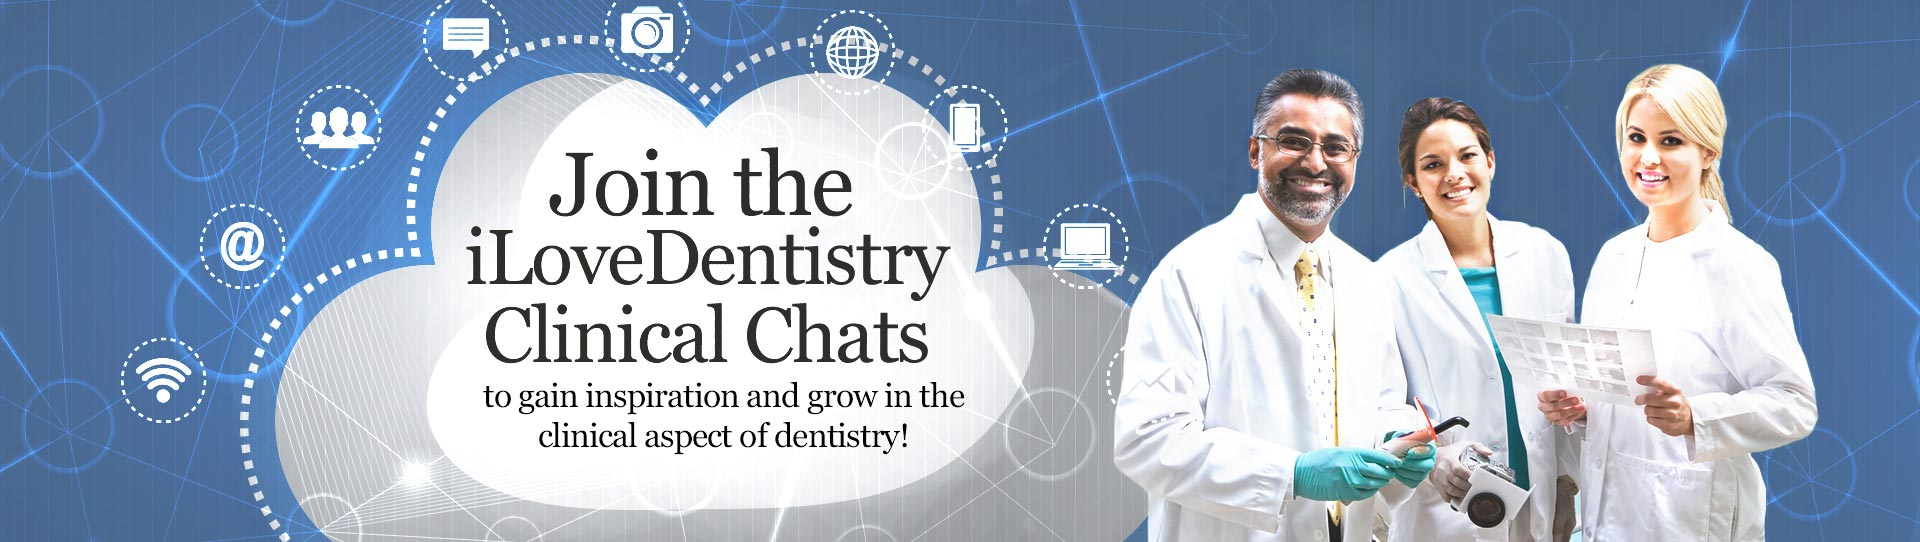 Join iLD Clinical Chats